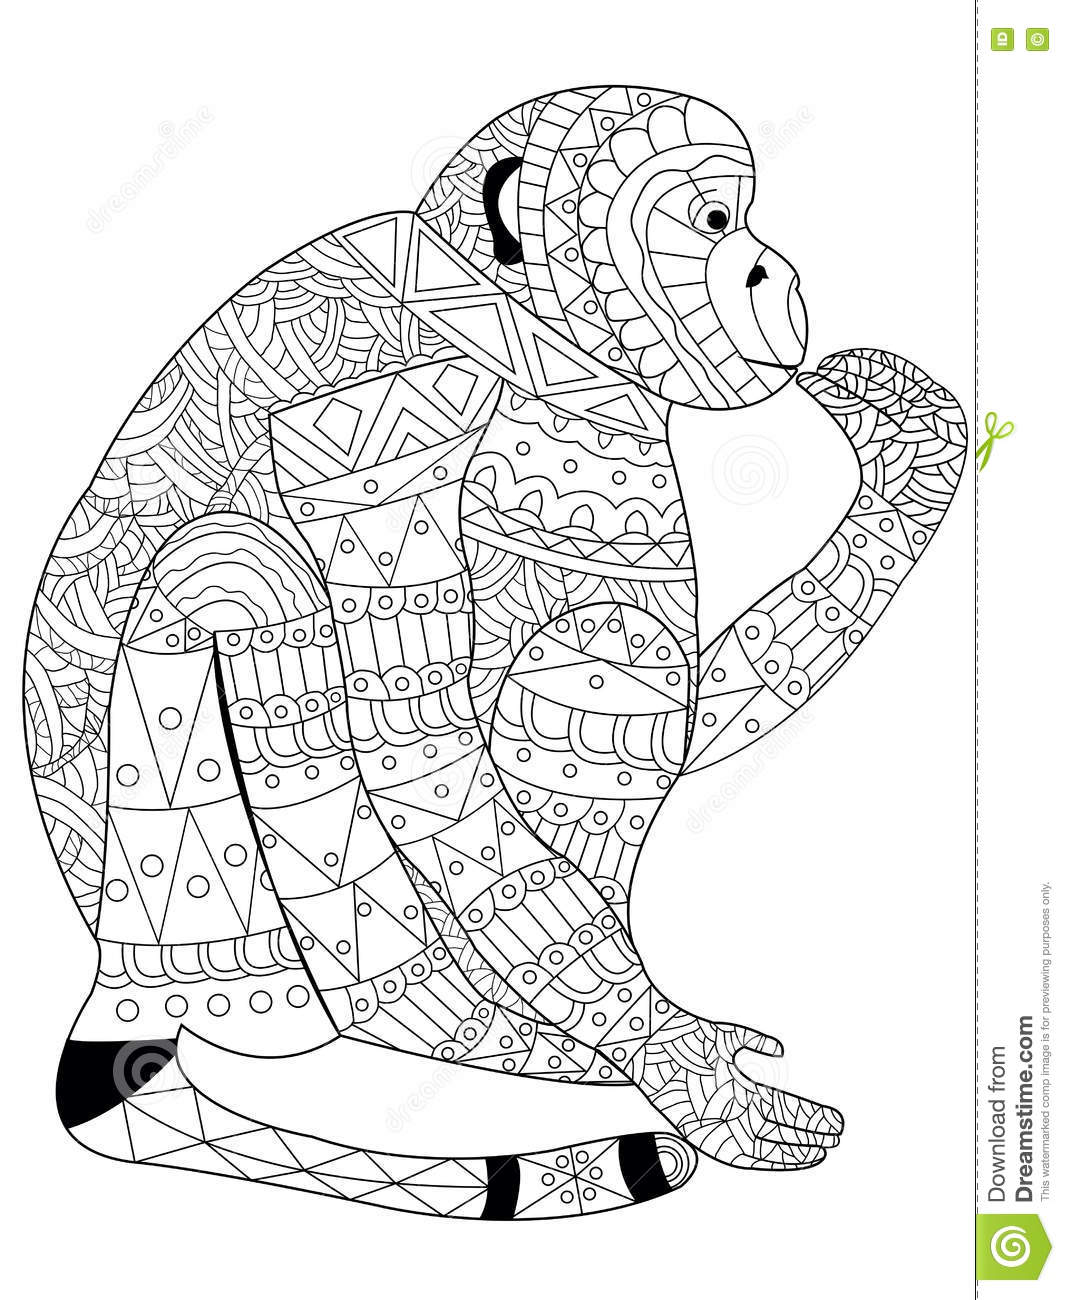 Monkey Coloring Vector For Adults Stock Vector - Illustration of ...